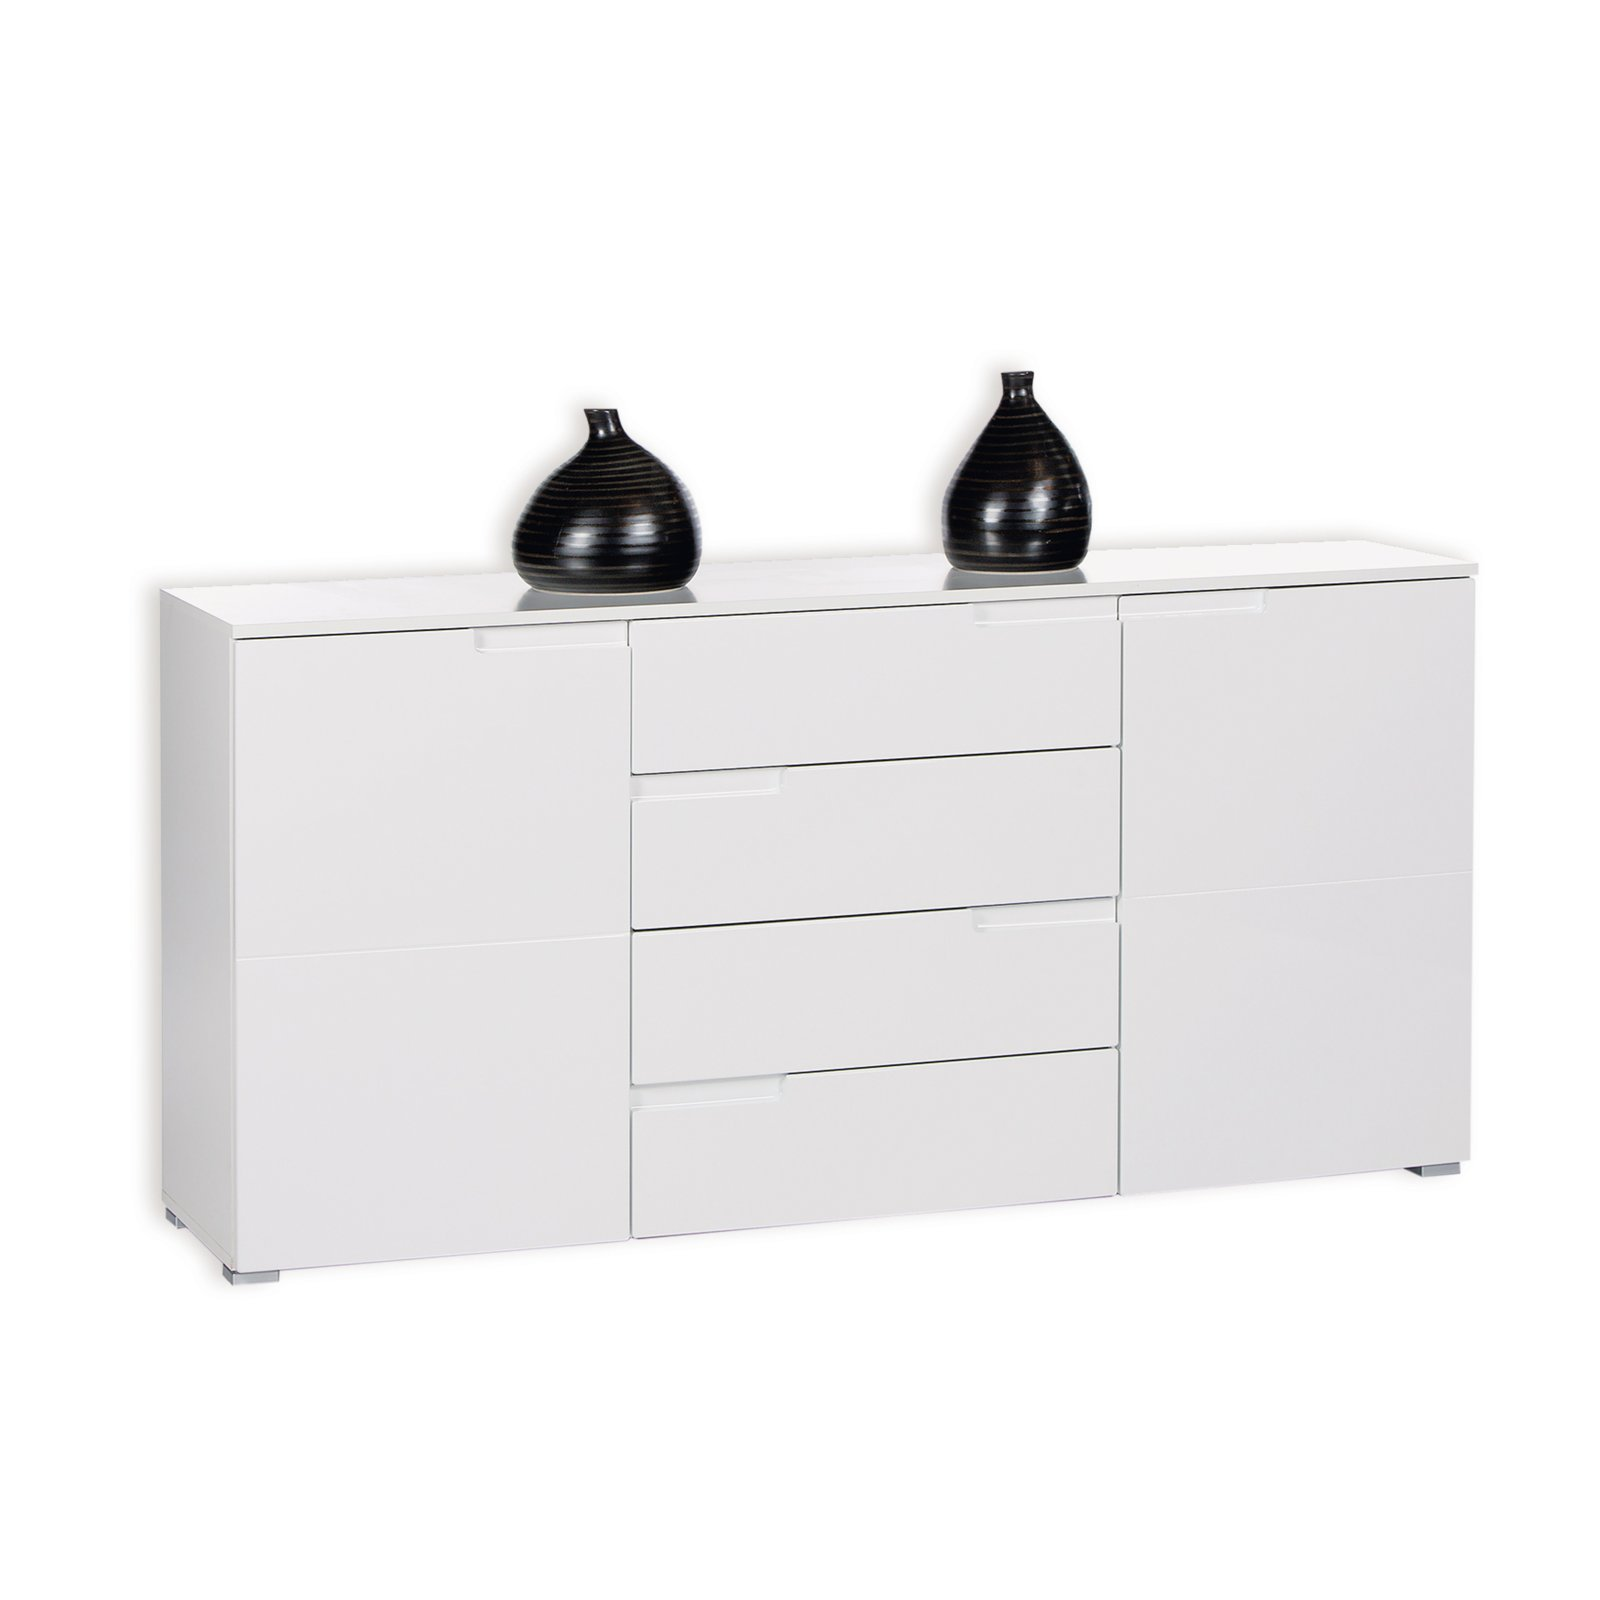 roller sideboard spice wei hochglanz 165 cm ebay. Black Bedroom Furniture Sets. Home Design Ideas